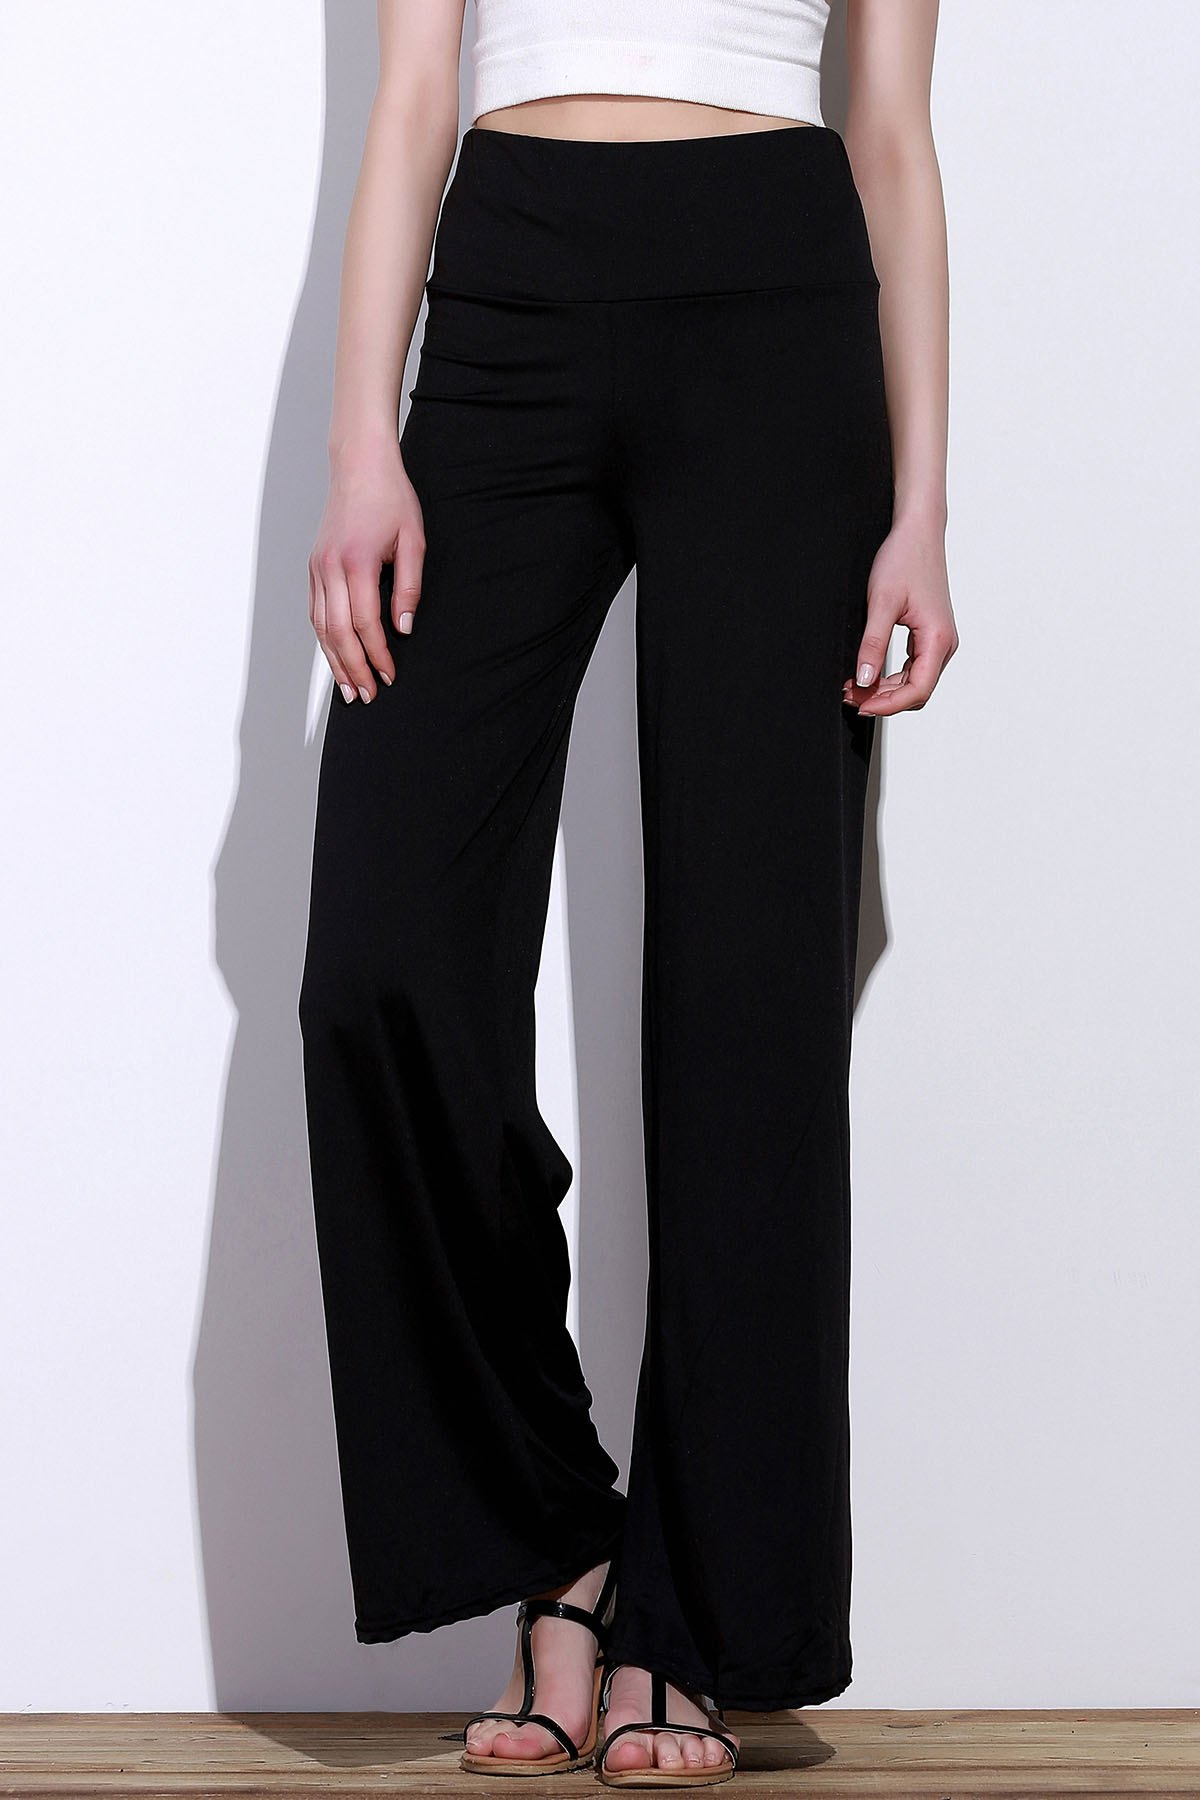 Casual Women's Solid Color Loose-Fitting Pants - BLACK XL